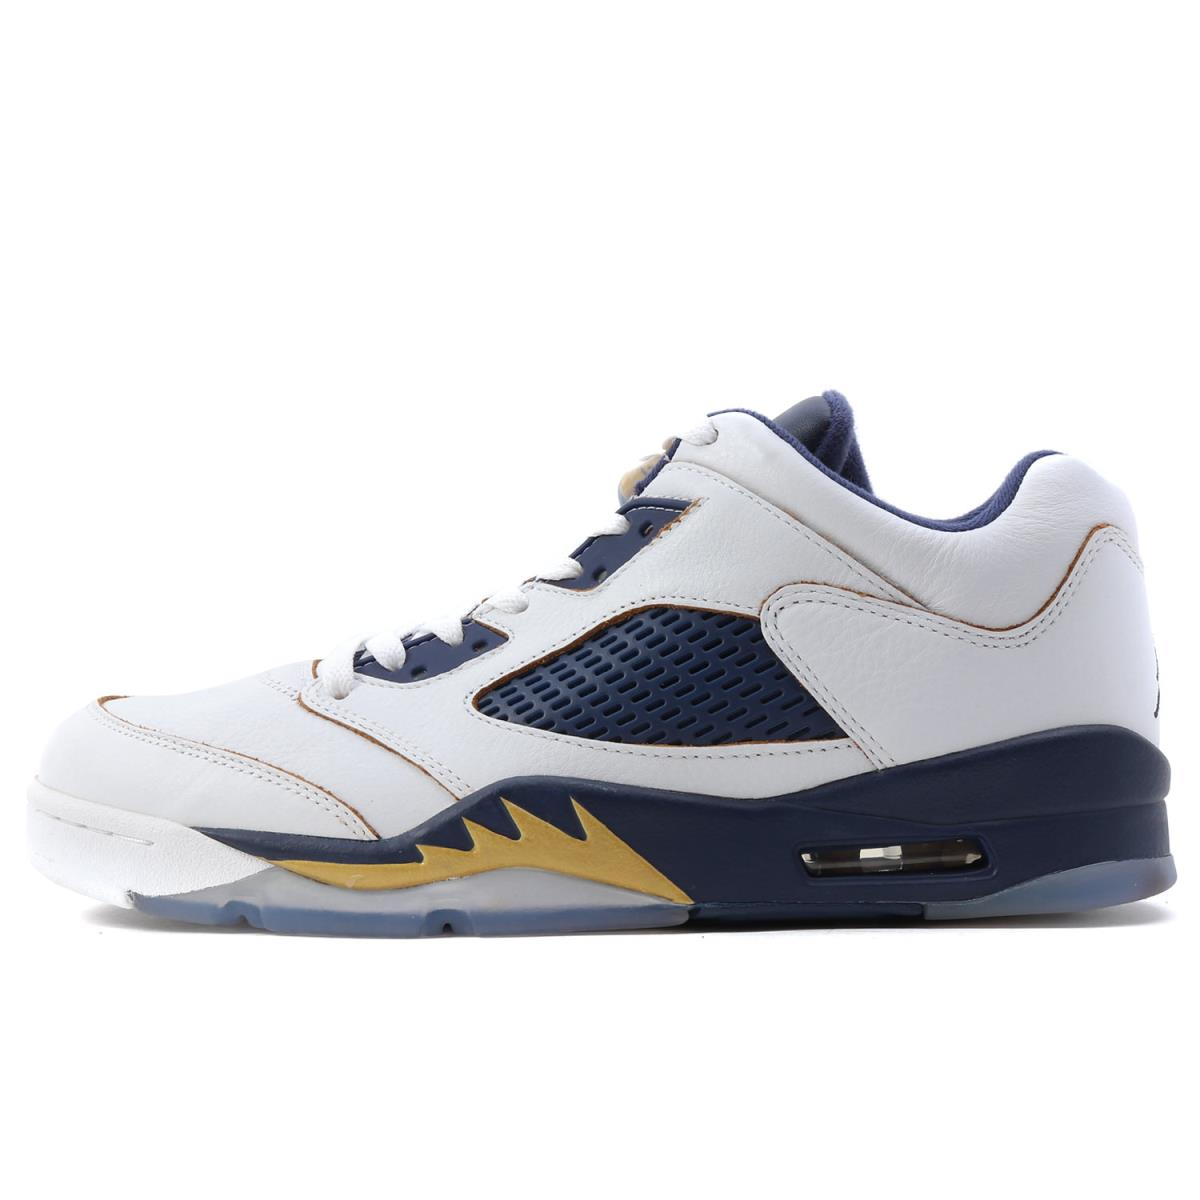 hot sale online c509a f3a0d NIKE (Nike) AIR JORDAN 5 RETRO LOW (819,171-135) white X metallic gold X  midnight navy US10(28cm)